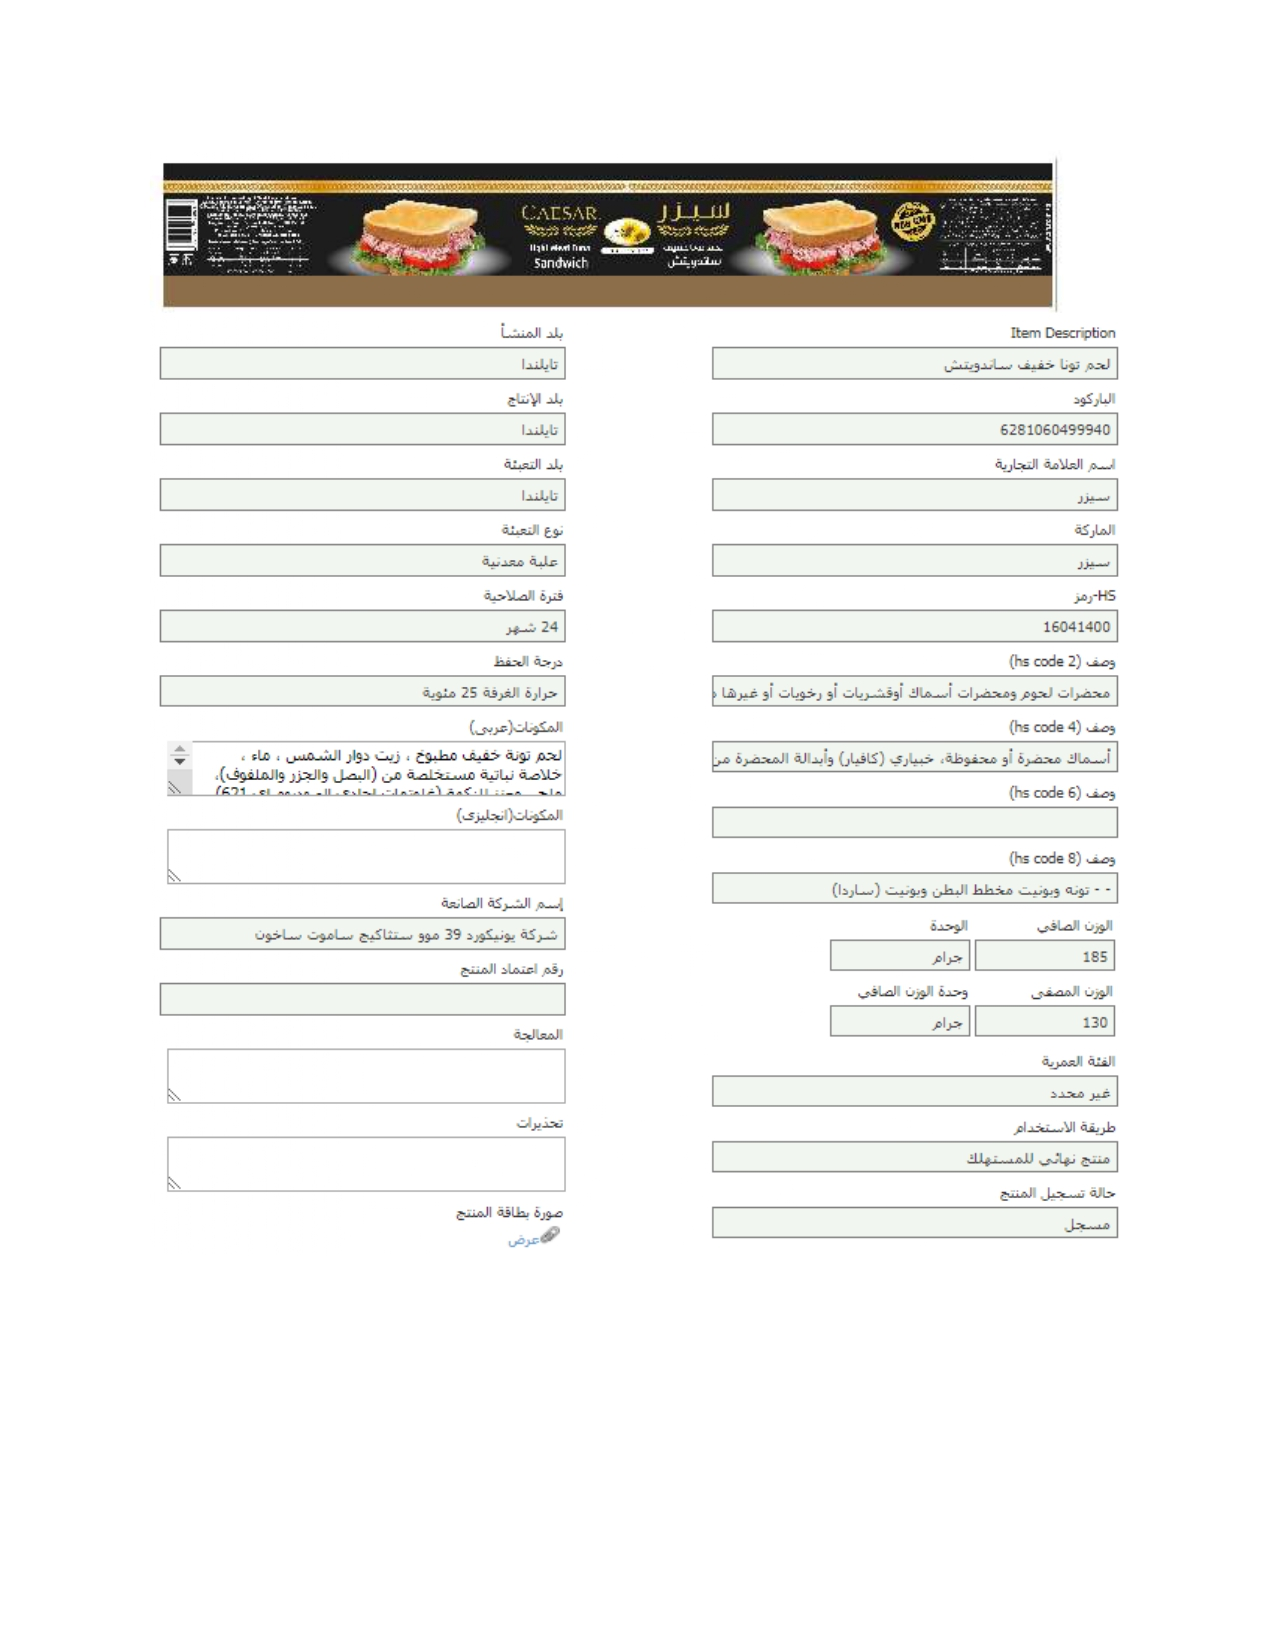 TUNA FOR SANDWICH 185 g 27-3_pages-to-jpg-0001.jpg